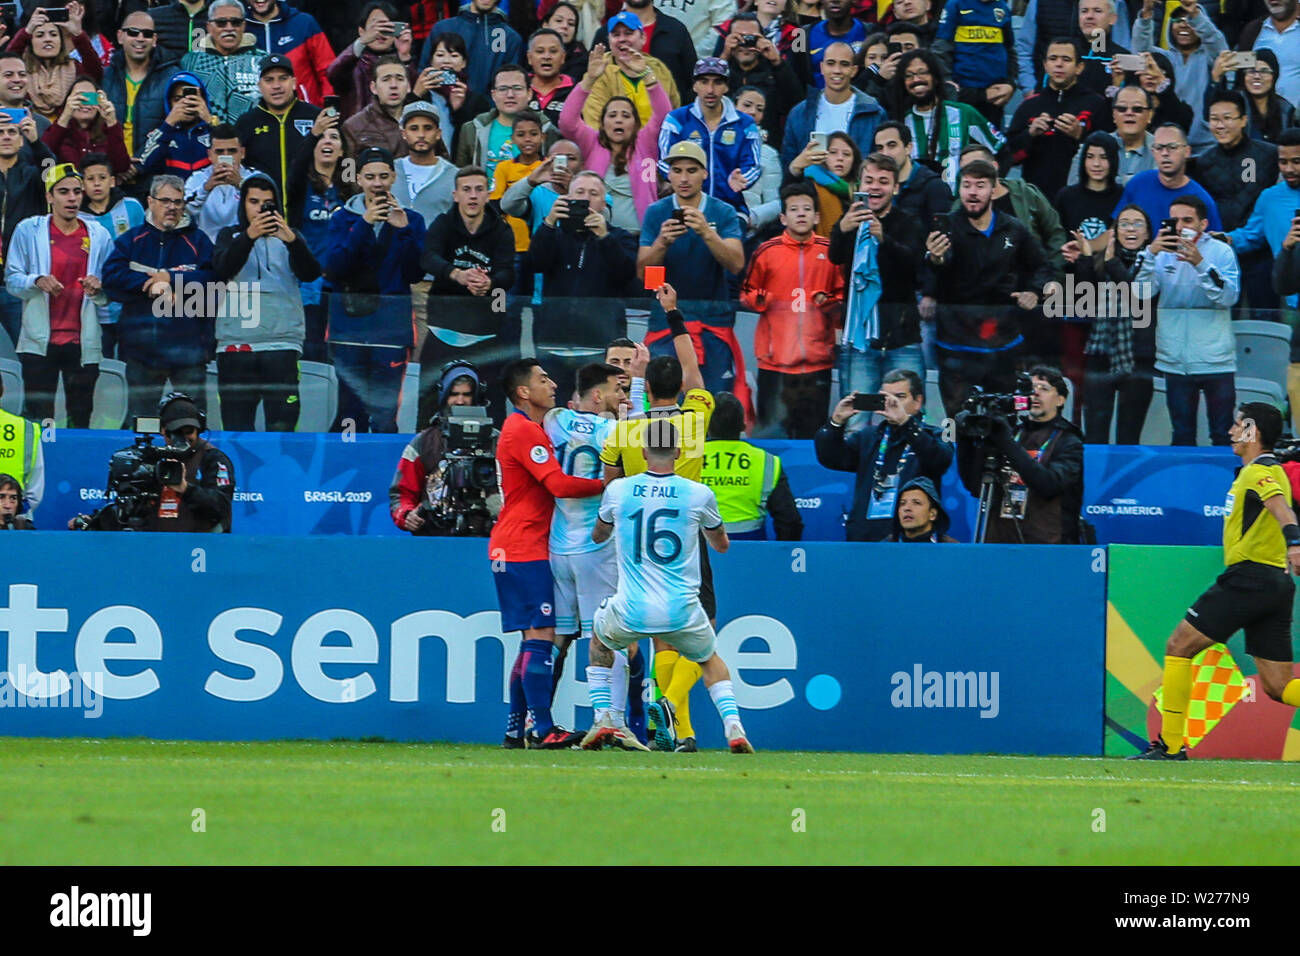 Brazil. 6th July, 2019. Messi in the Game of the match between Argentina X Chile valid for third place dispute of Copa America 2019, in the Arena Corinthians, in São Paulo, this Saturday (06). Photo: Geraldo Bubniak Credit: Geraldo Bubniak/ZUMA Wire/Alamy Live News - Stock Image